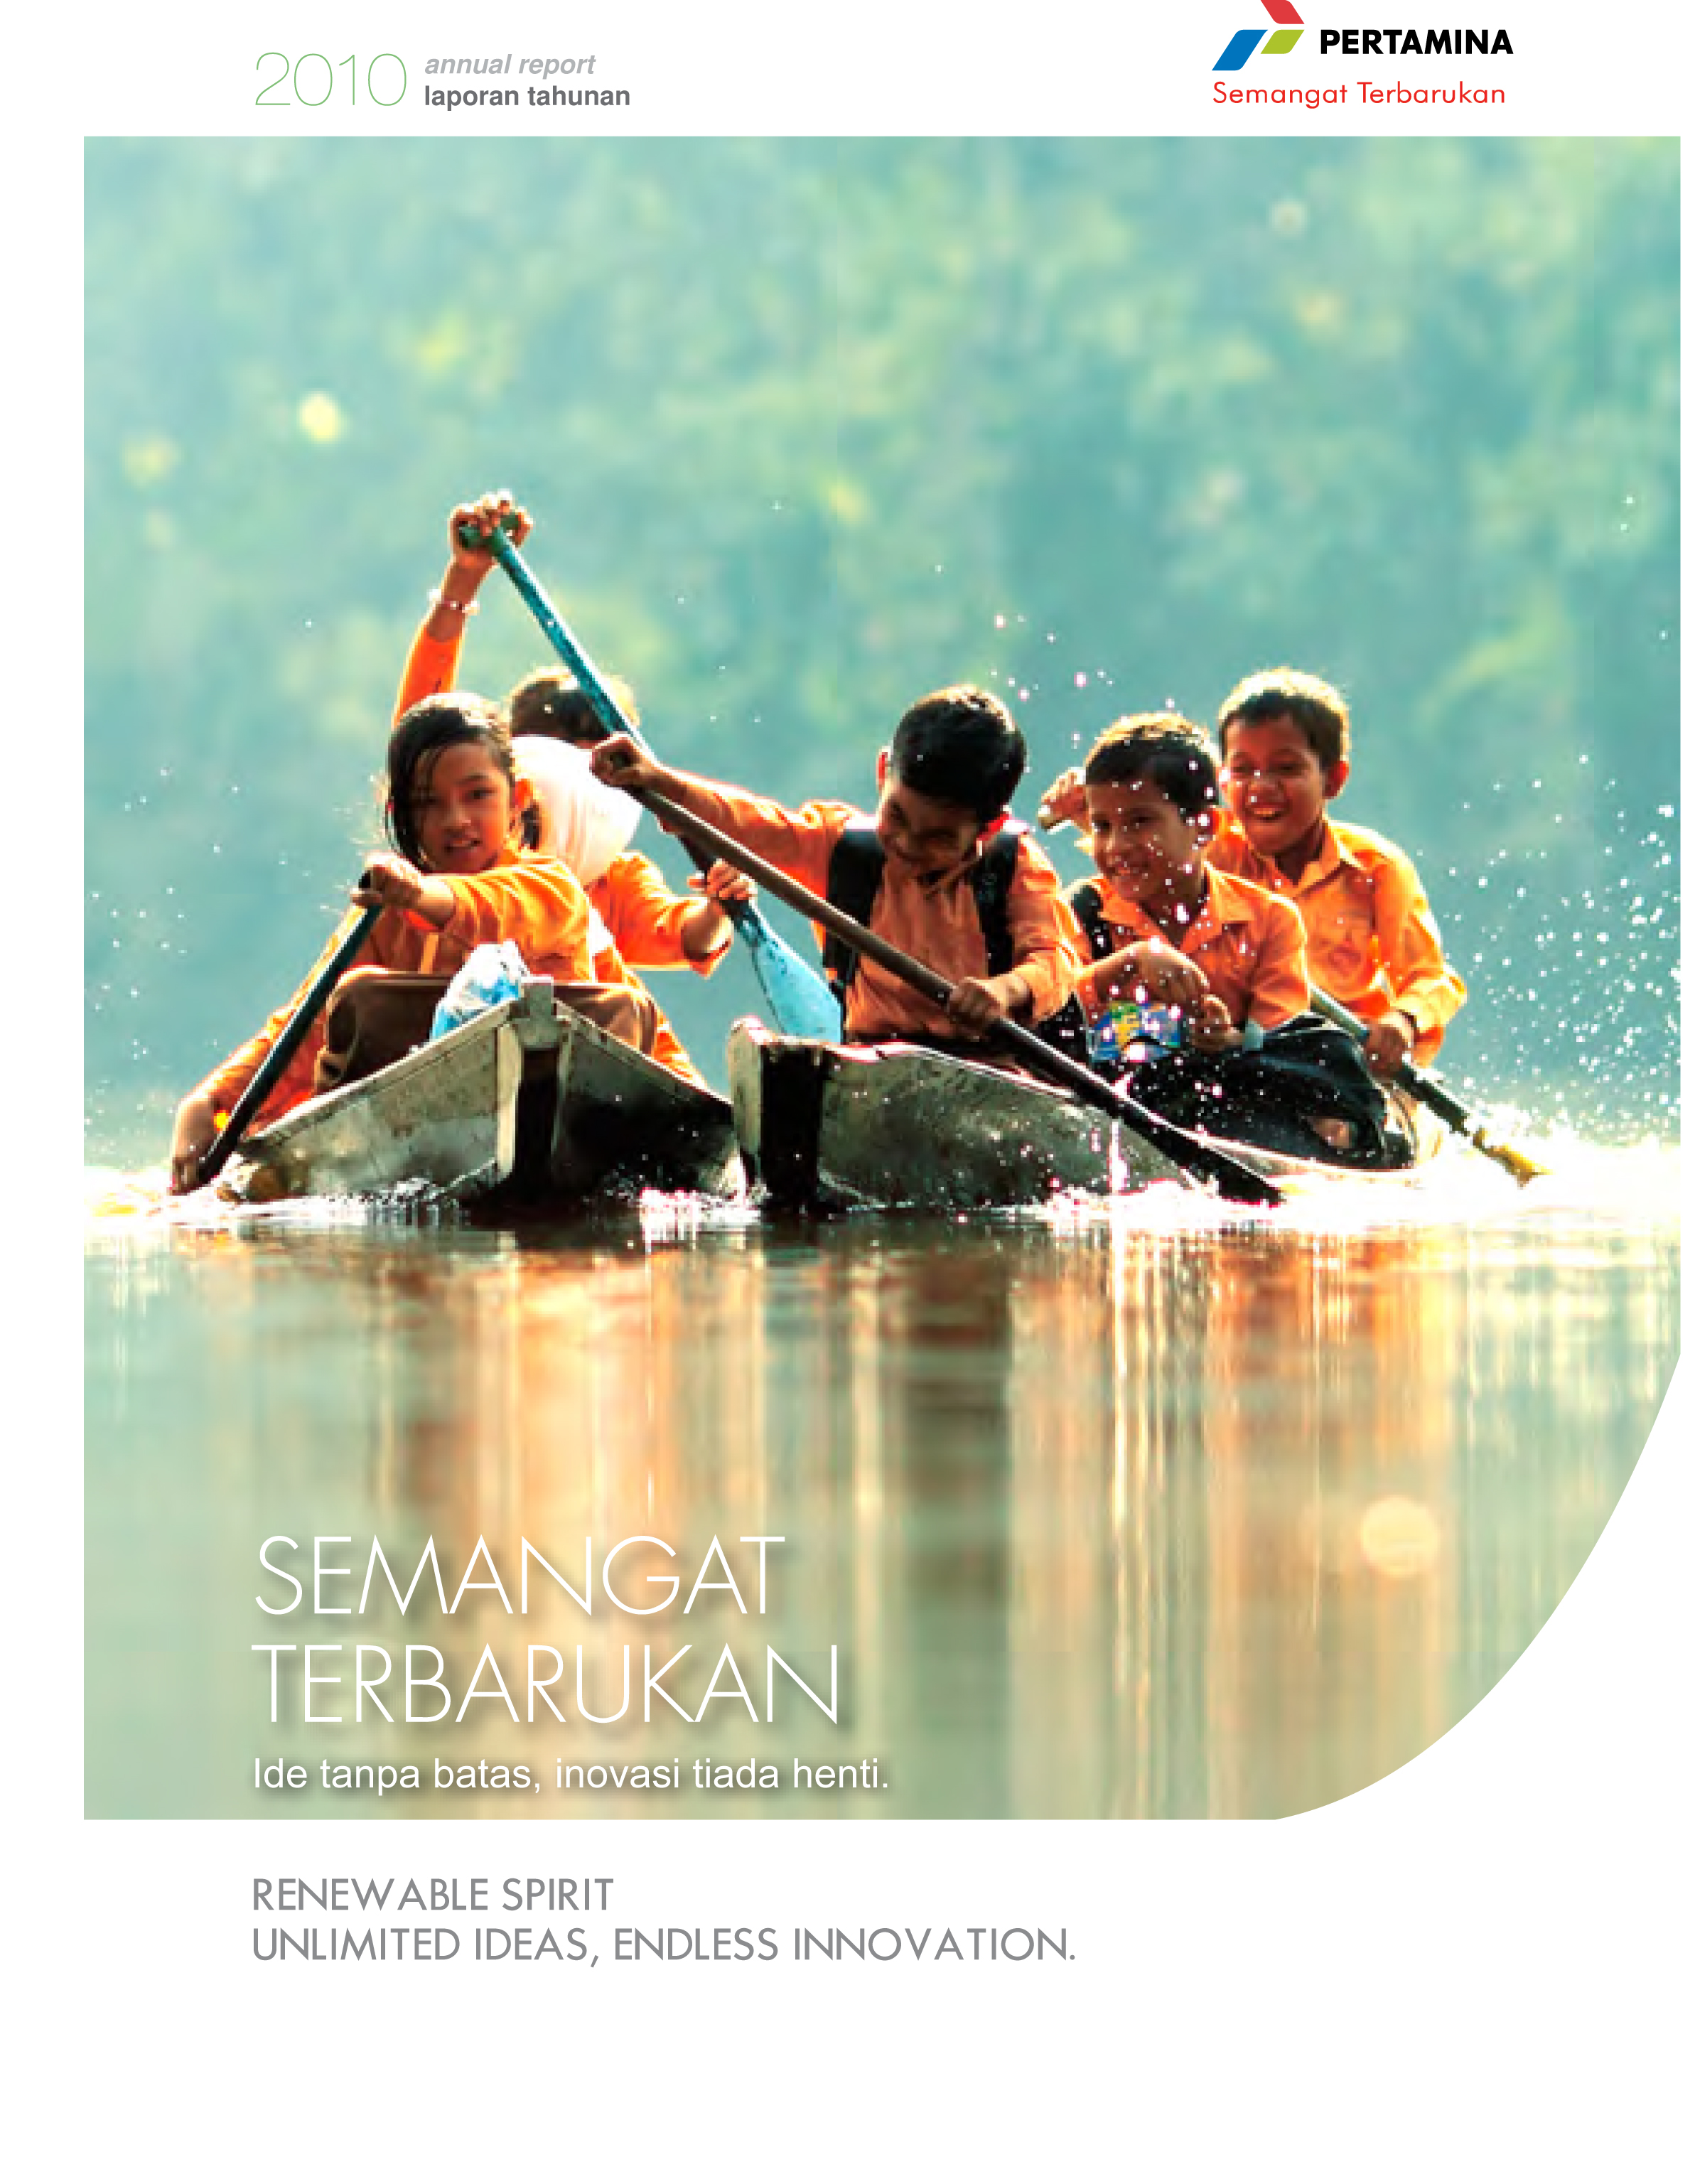 Annual Report Pertamina 2010